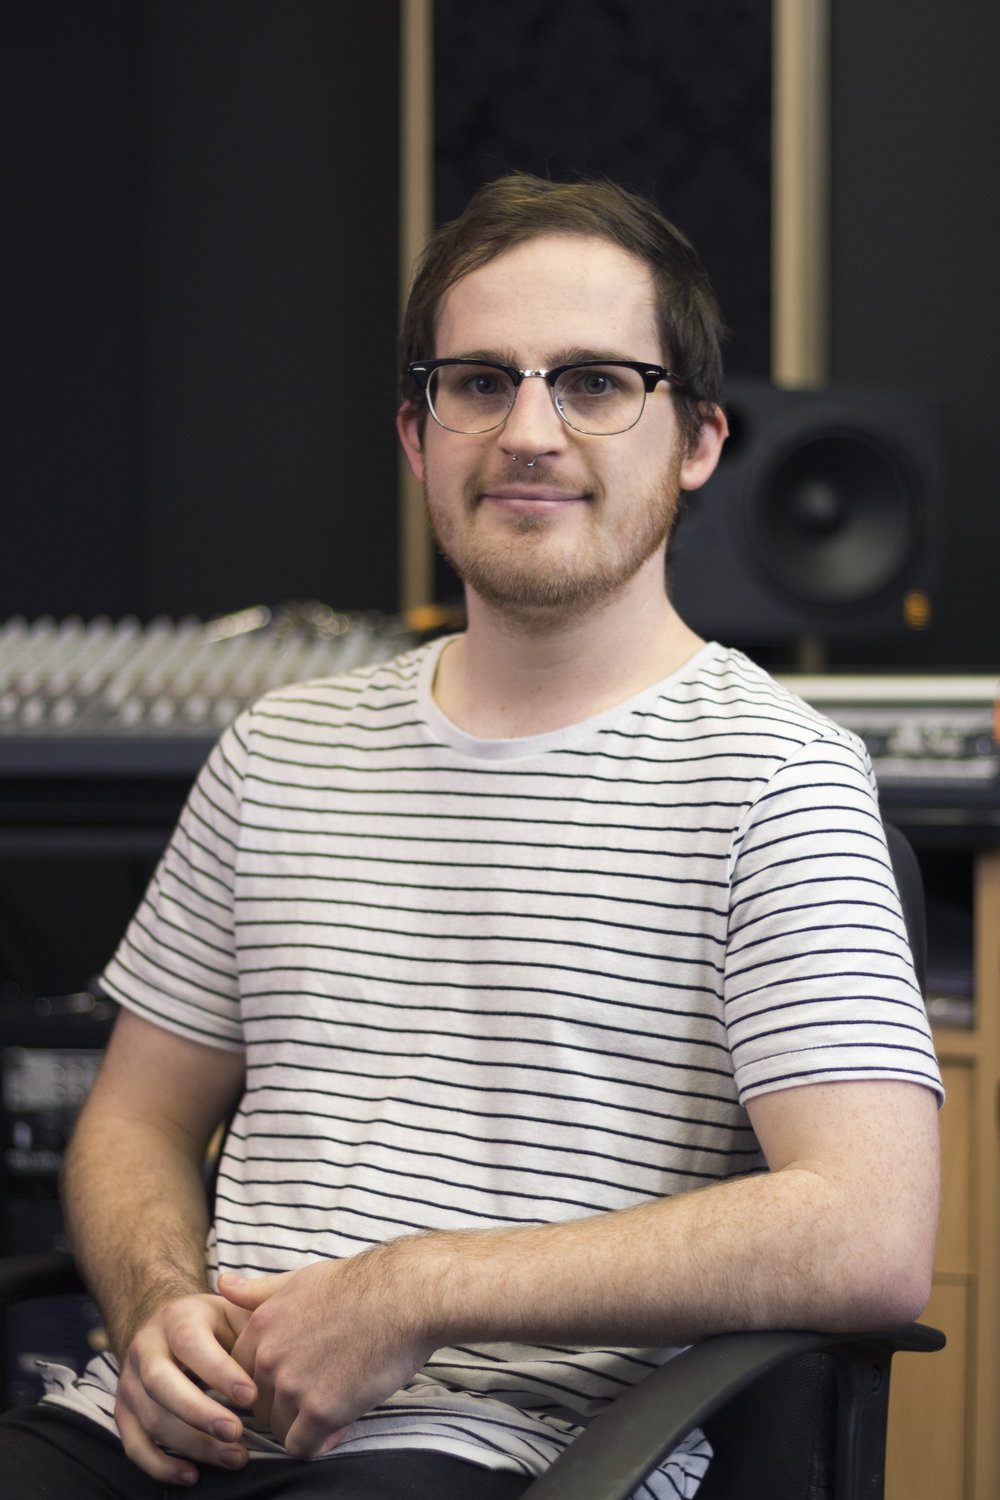 Calum McLaughlin (Calum JM Recordings)   Recording Engineer // Mixing Engineer // Mastering Engineer  Specialising in guitar-driven indie rock, Calum has worked with the likes of Great Gable, Spacey Jane, Holding Giants, Chelsea Jones, and Mixed Signals.  Honing his skills as an engineer by practising techniques discovered from shadowing established Perth engineers Simon Struthers and Rob Grant.